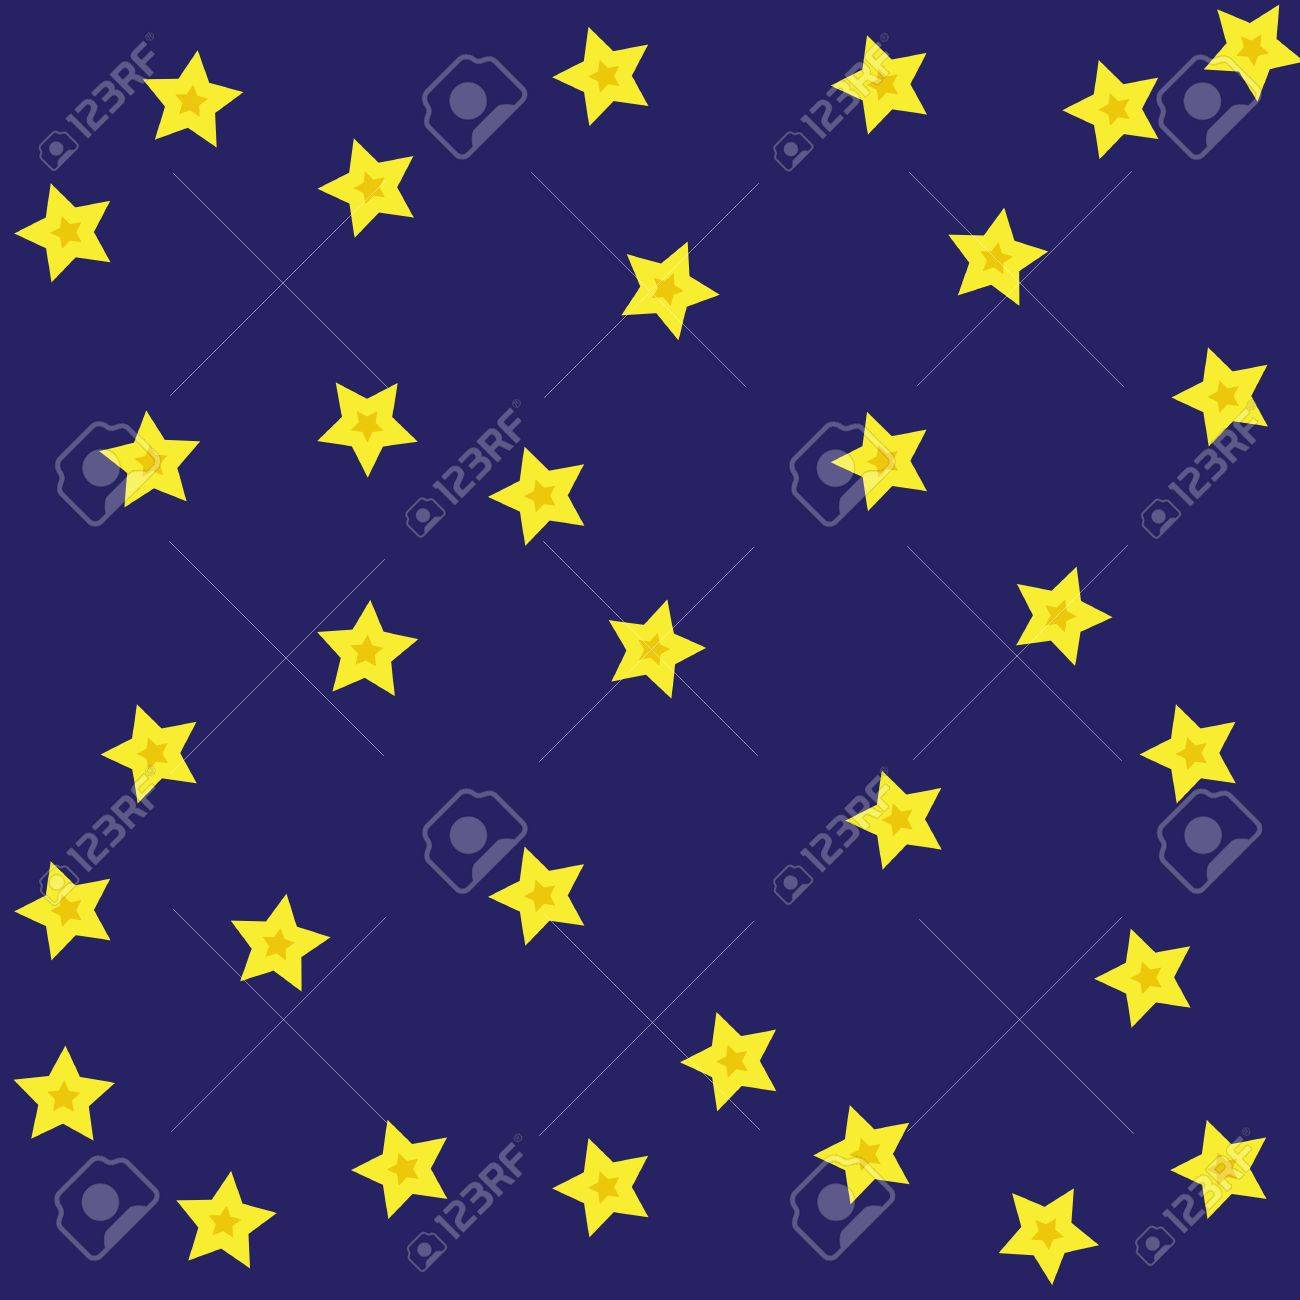 stars and night sky background royalty free cliparts vectors and rh 123rf com night sky vector free starry night sky vector